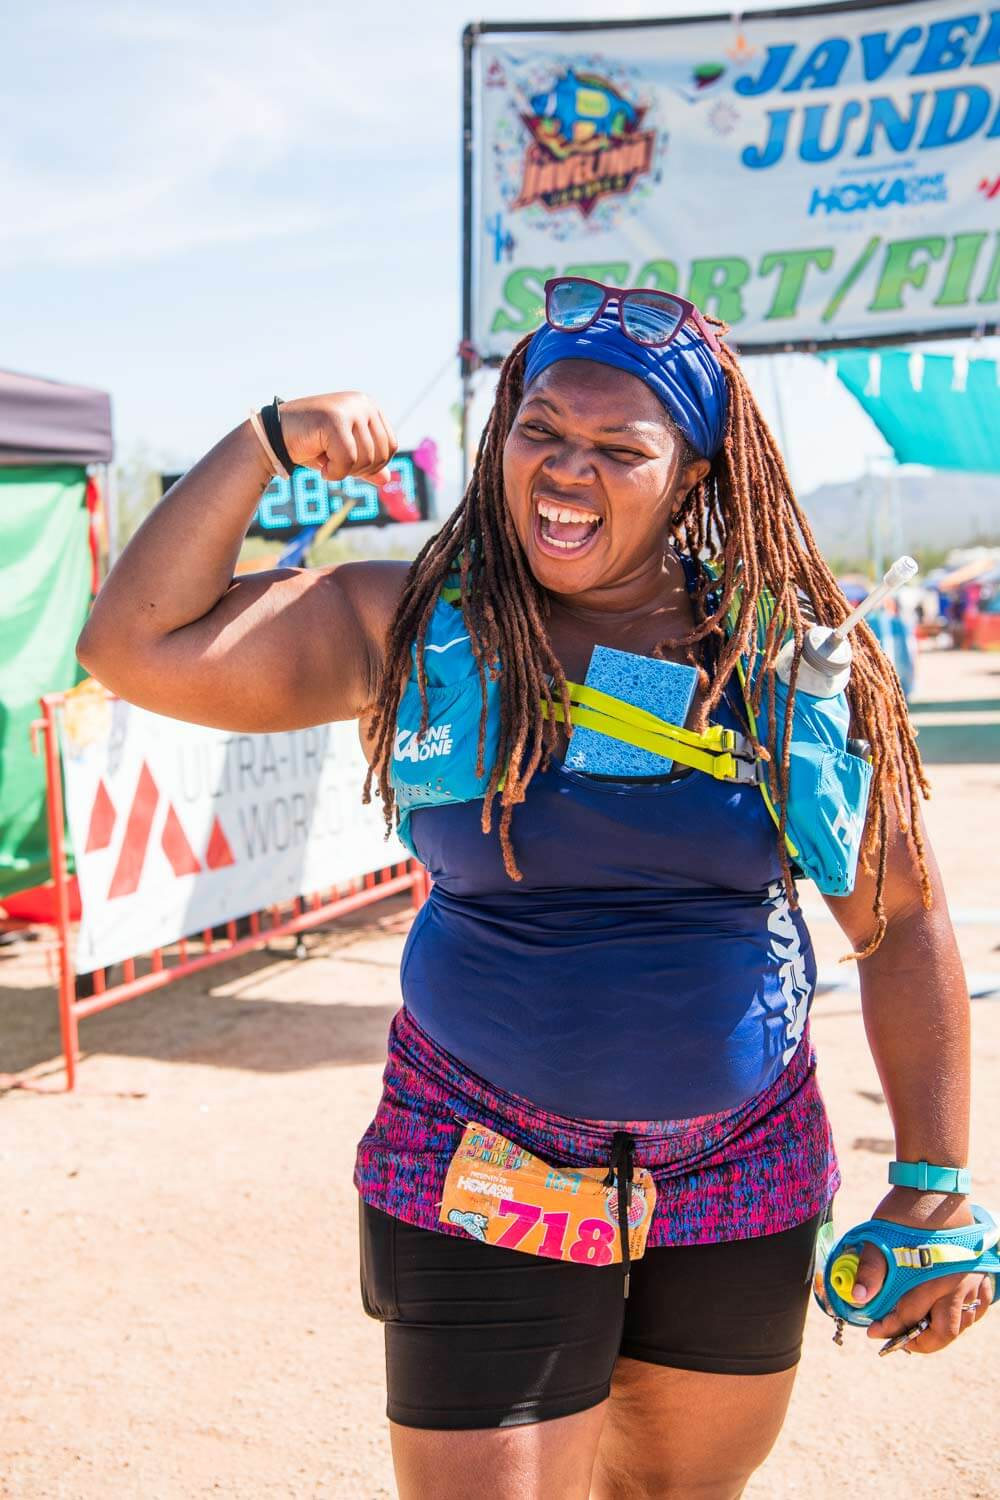 Concrete to Cacti: Latoya Shauntay Snell's first 100K